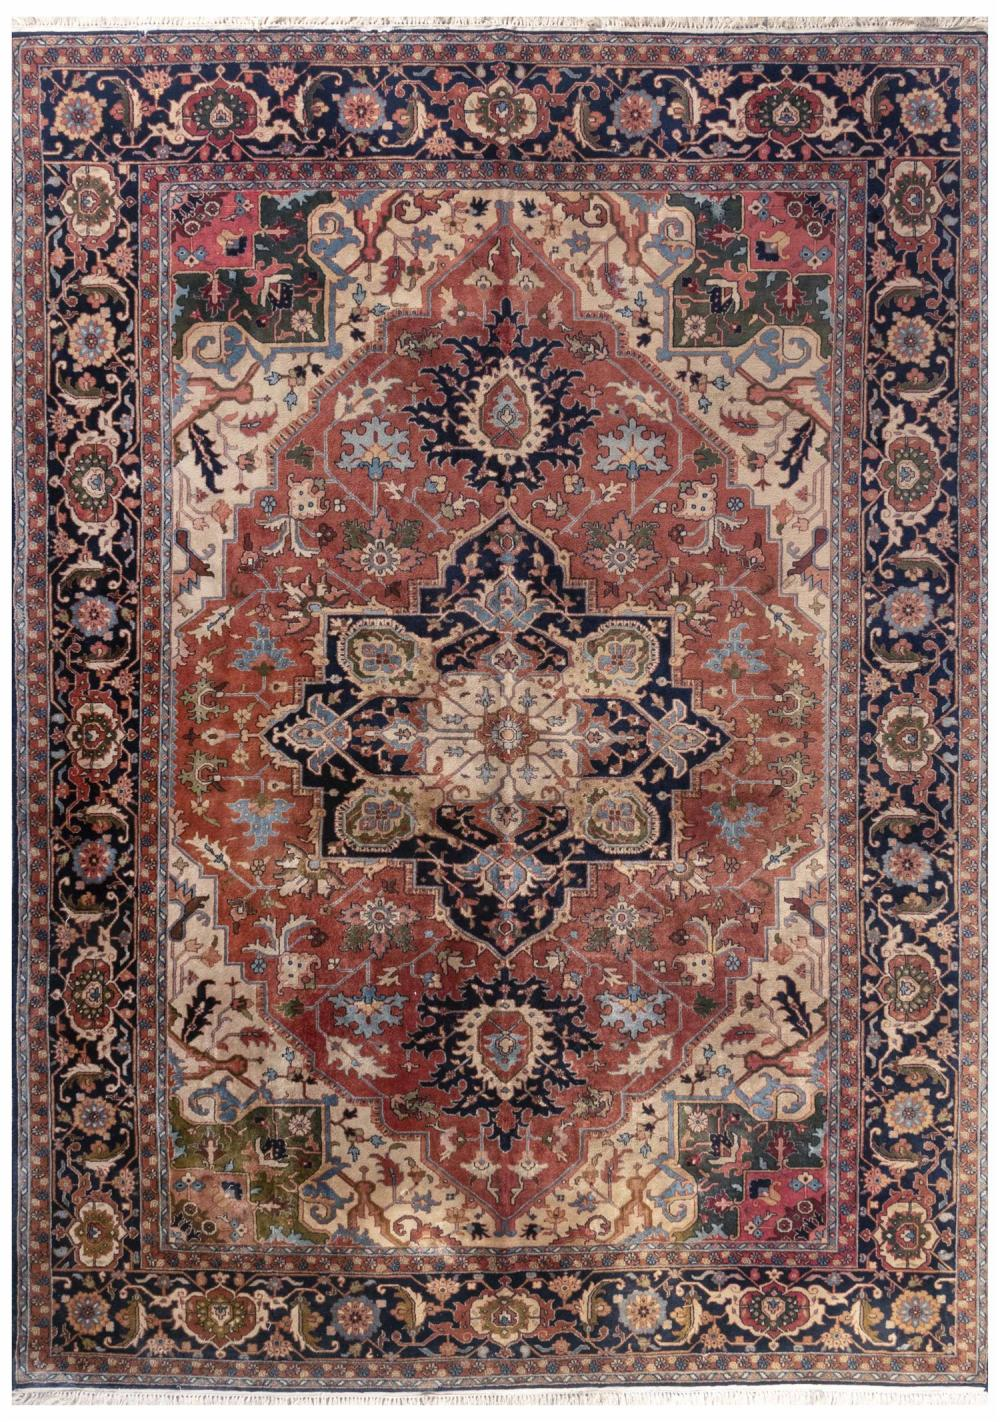 """ORIENTAL RUG: SERAPI DESIGN 9'11"""" x 13'9"""" Rust-red field with a blue and ivory gabled medallion that contains green, gold and rust-r."""